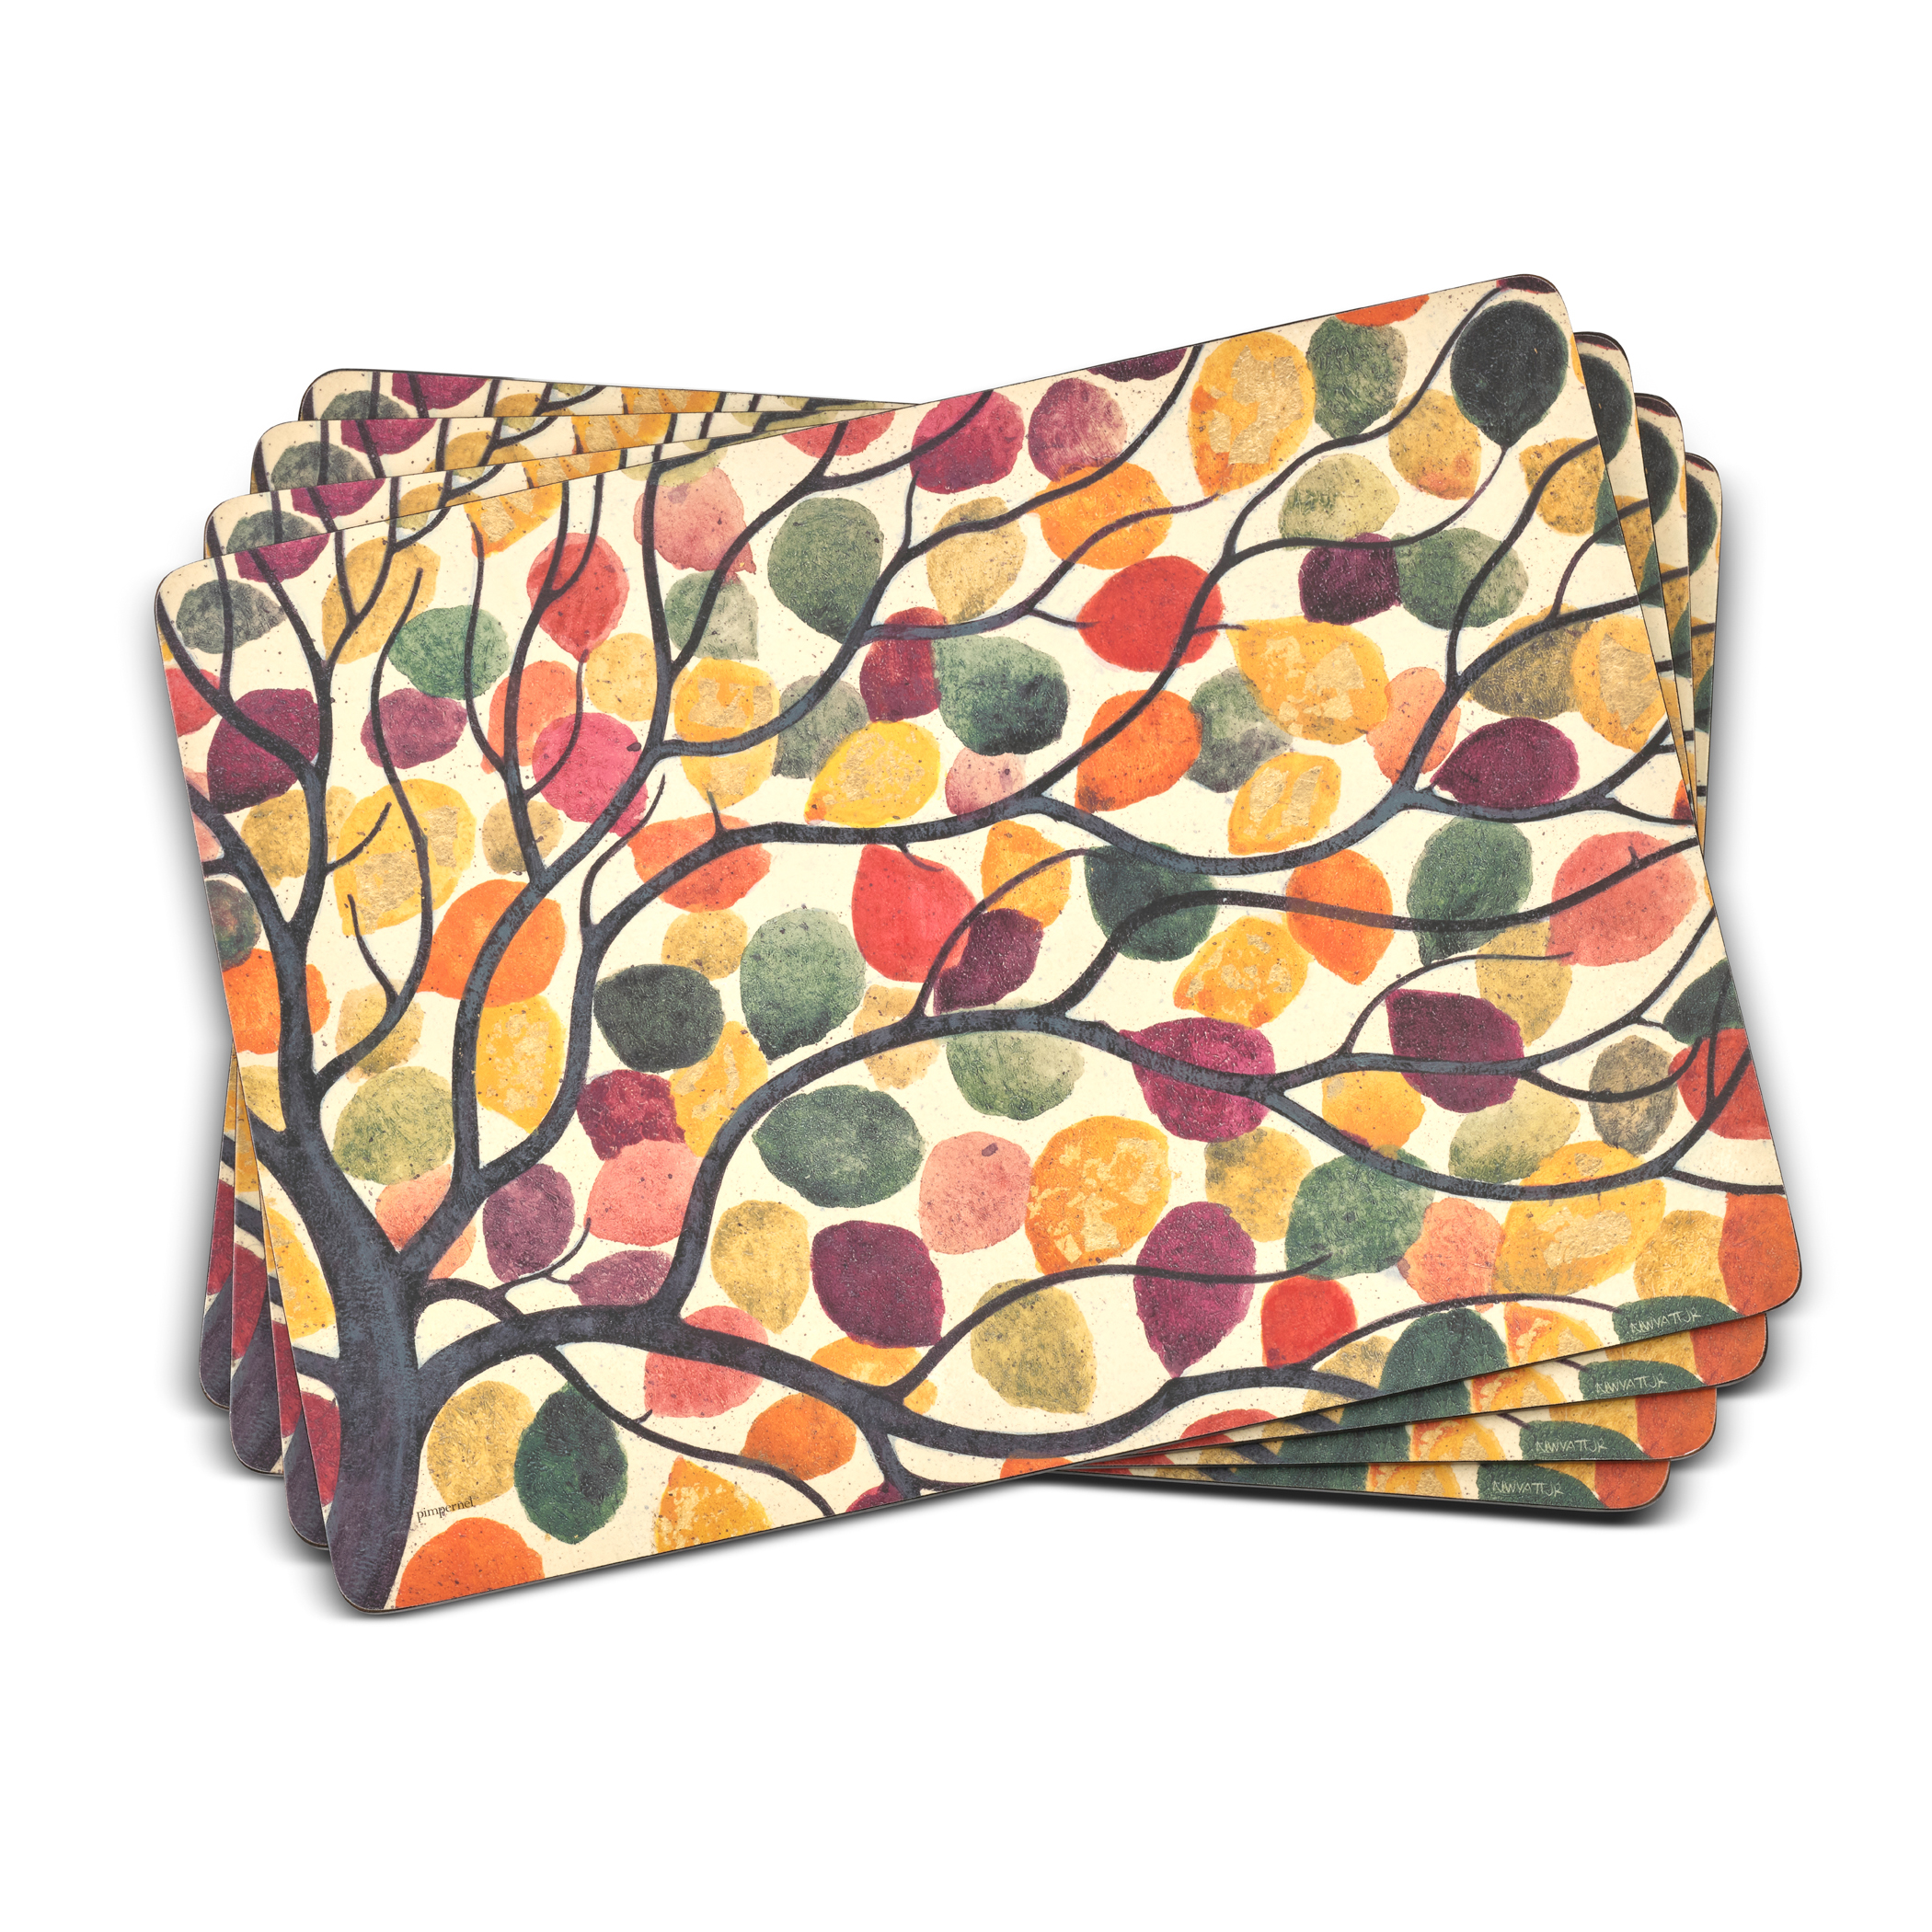 Pimpernel Dancing Branches Set of 4 Placemats image number 0